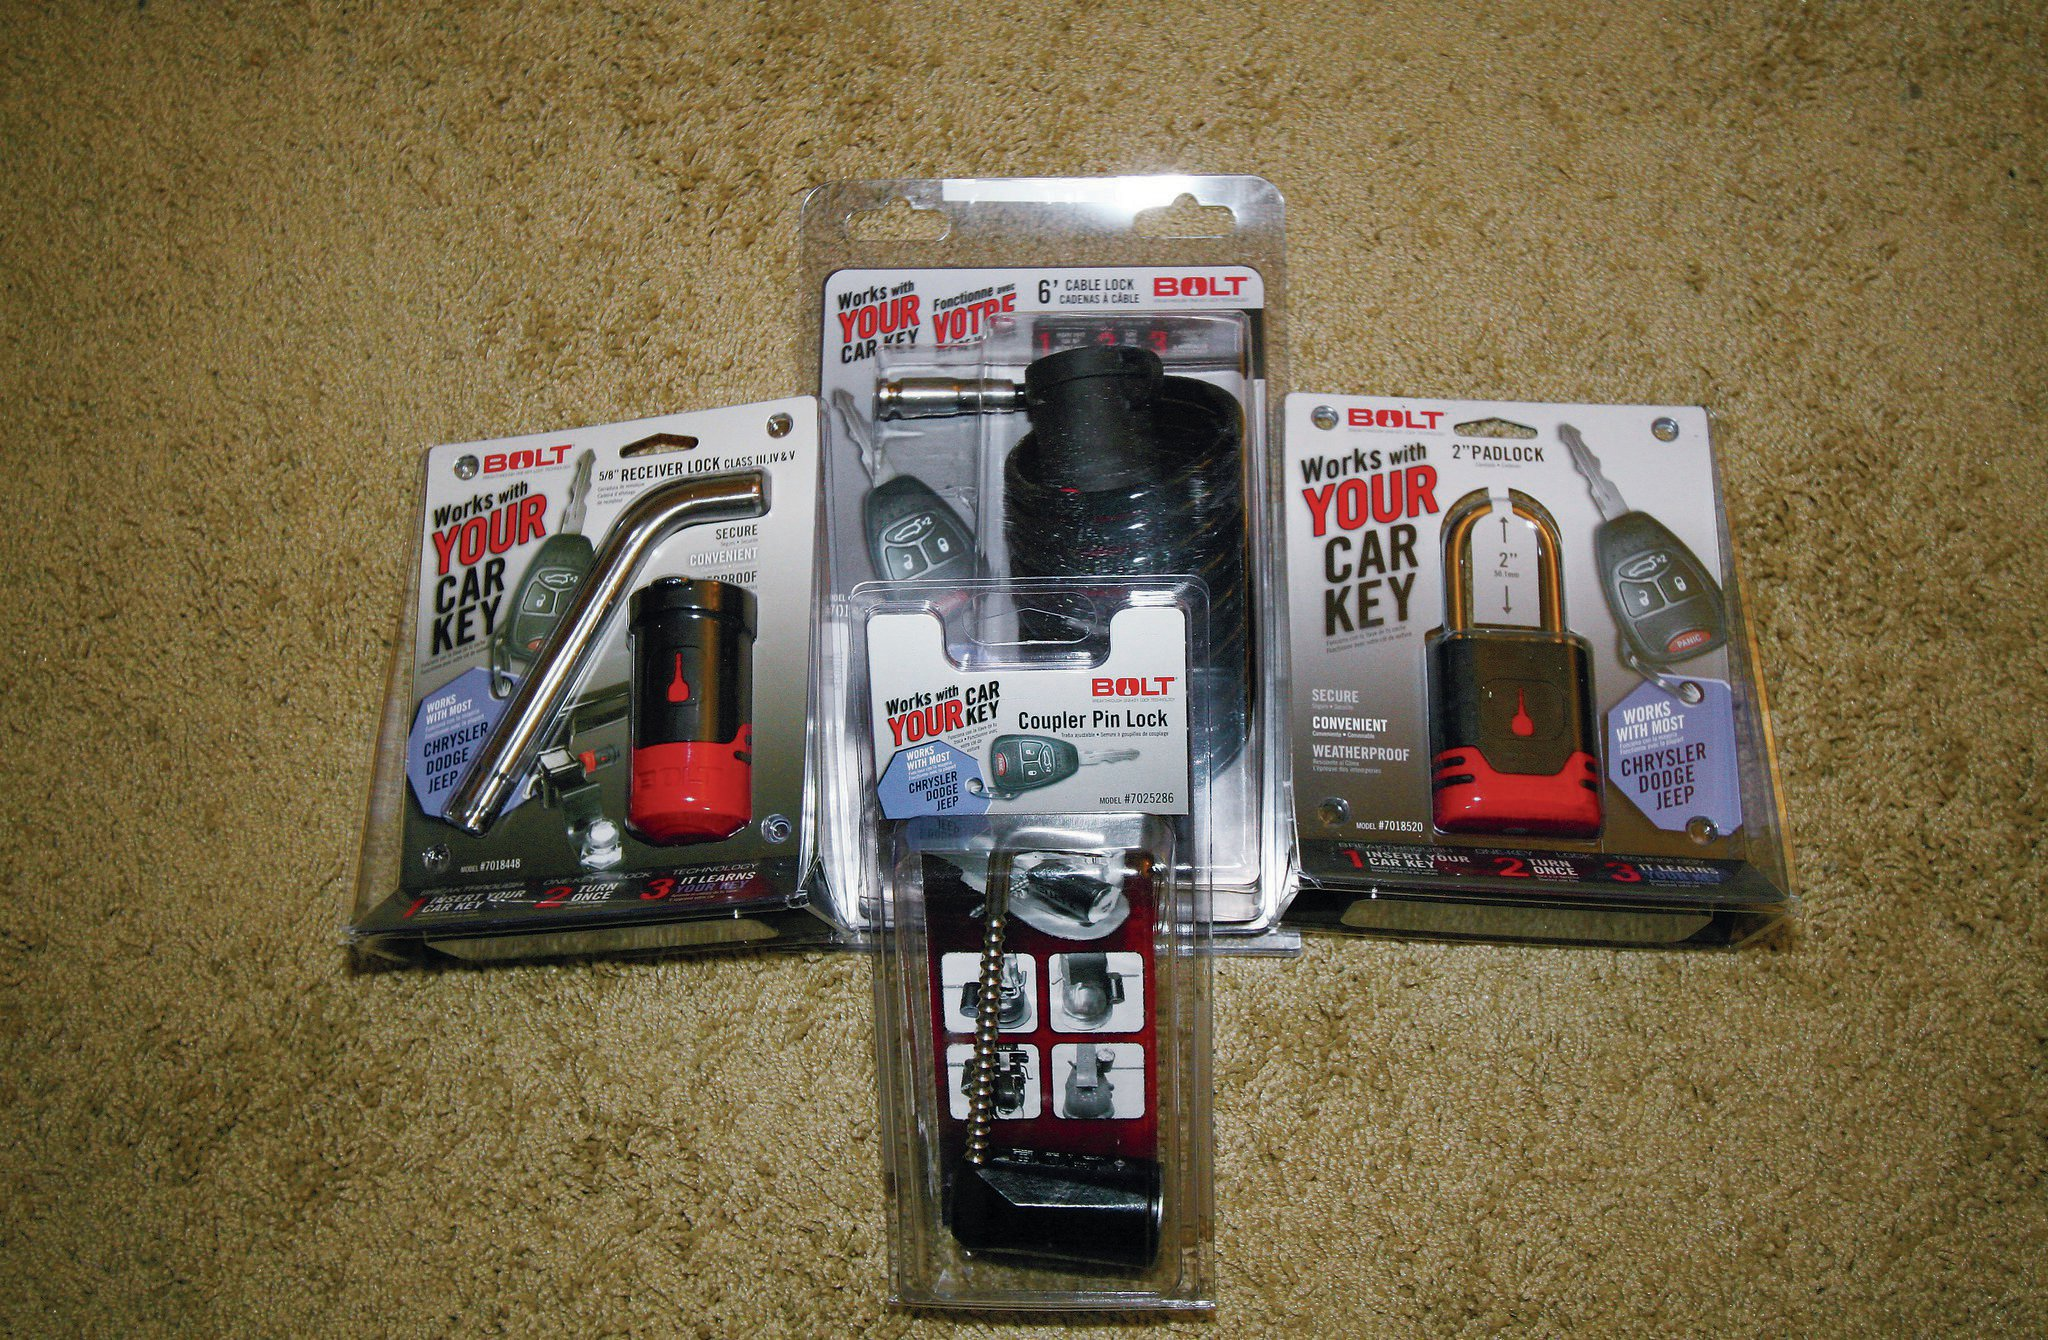 A few other nifty products in the Bolt line-up, include a trailer lock, hitch-pin lock, padlock, and cable lock. From your spare tire to your off-road trailer, just about everything you need to secure is covered by these locks.